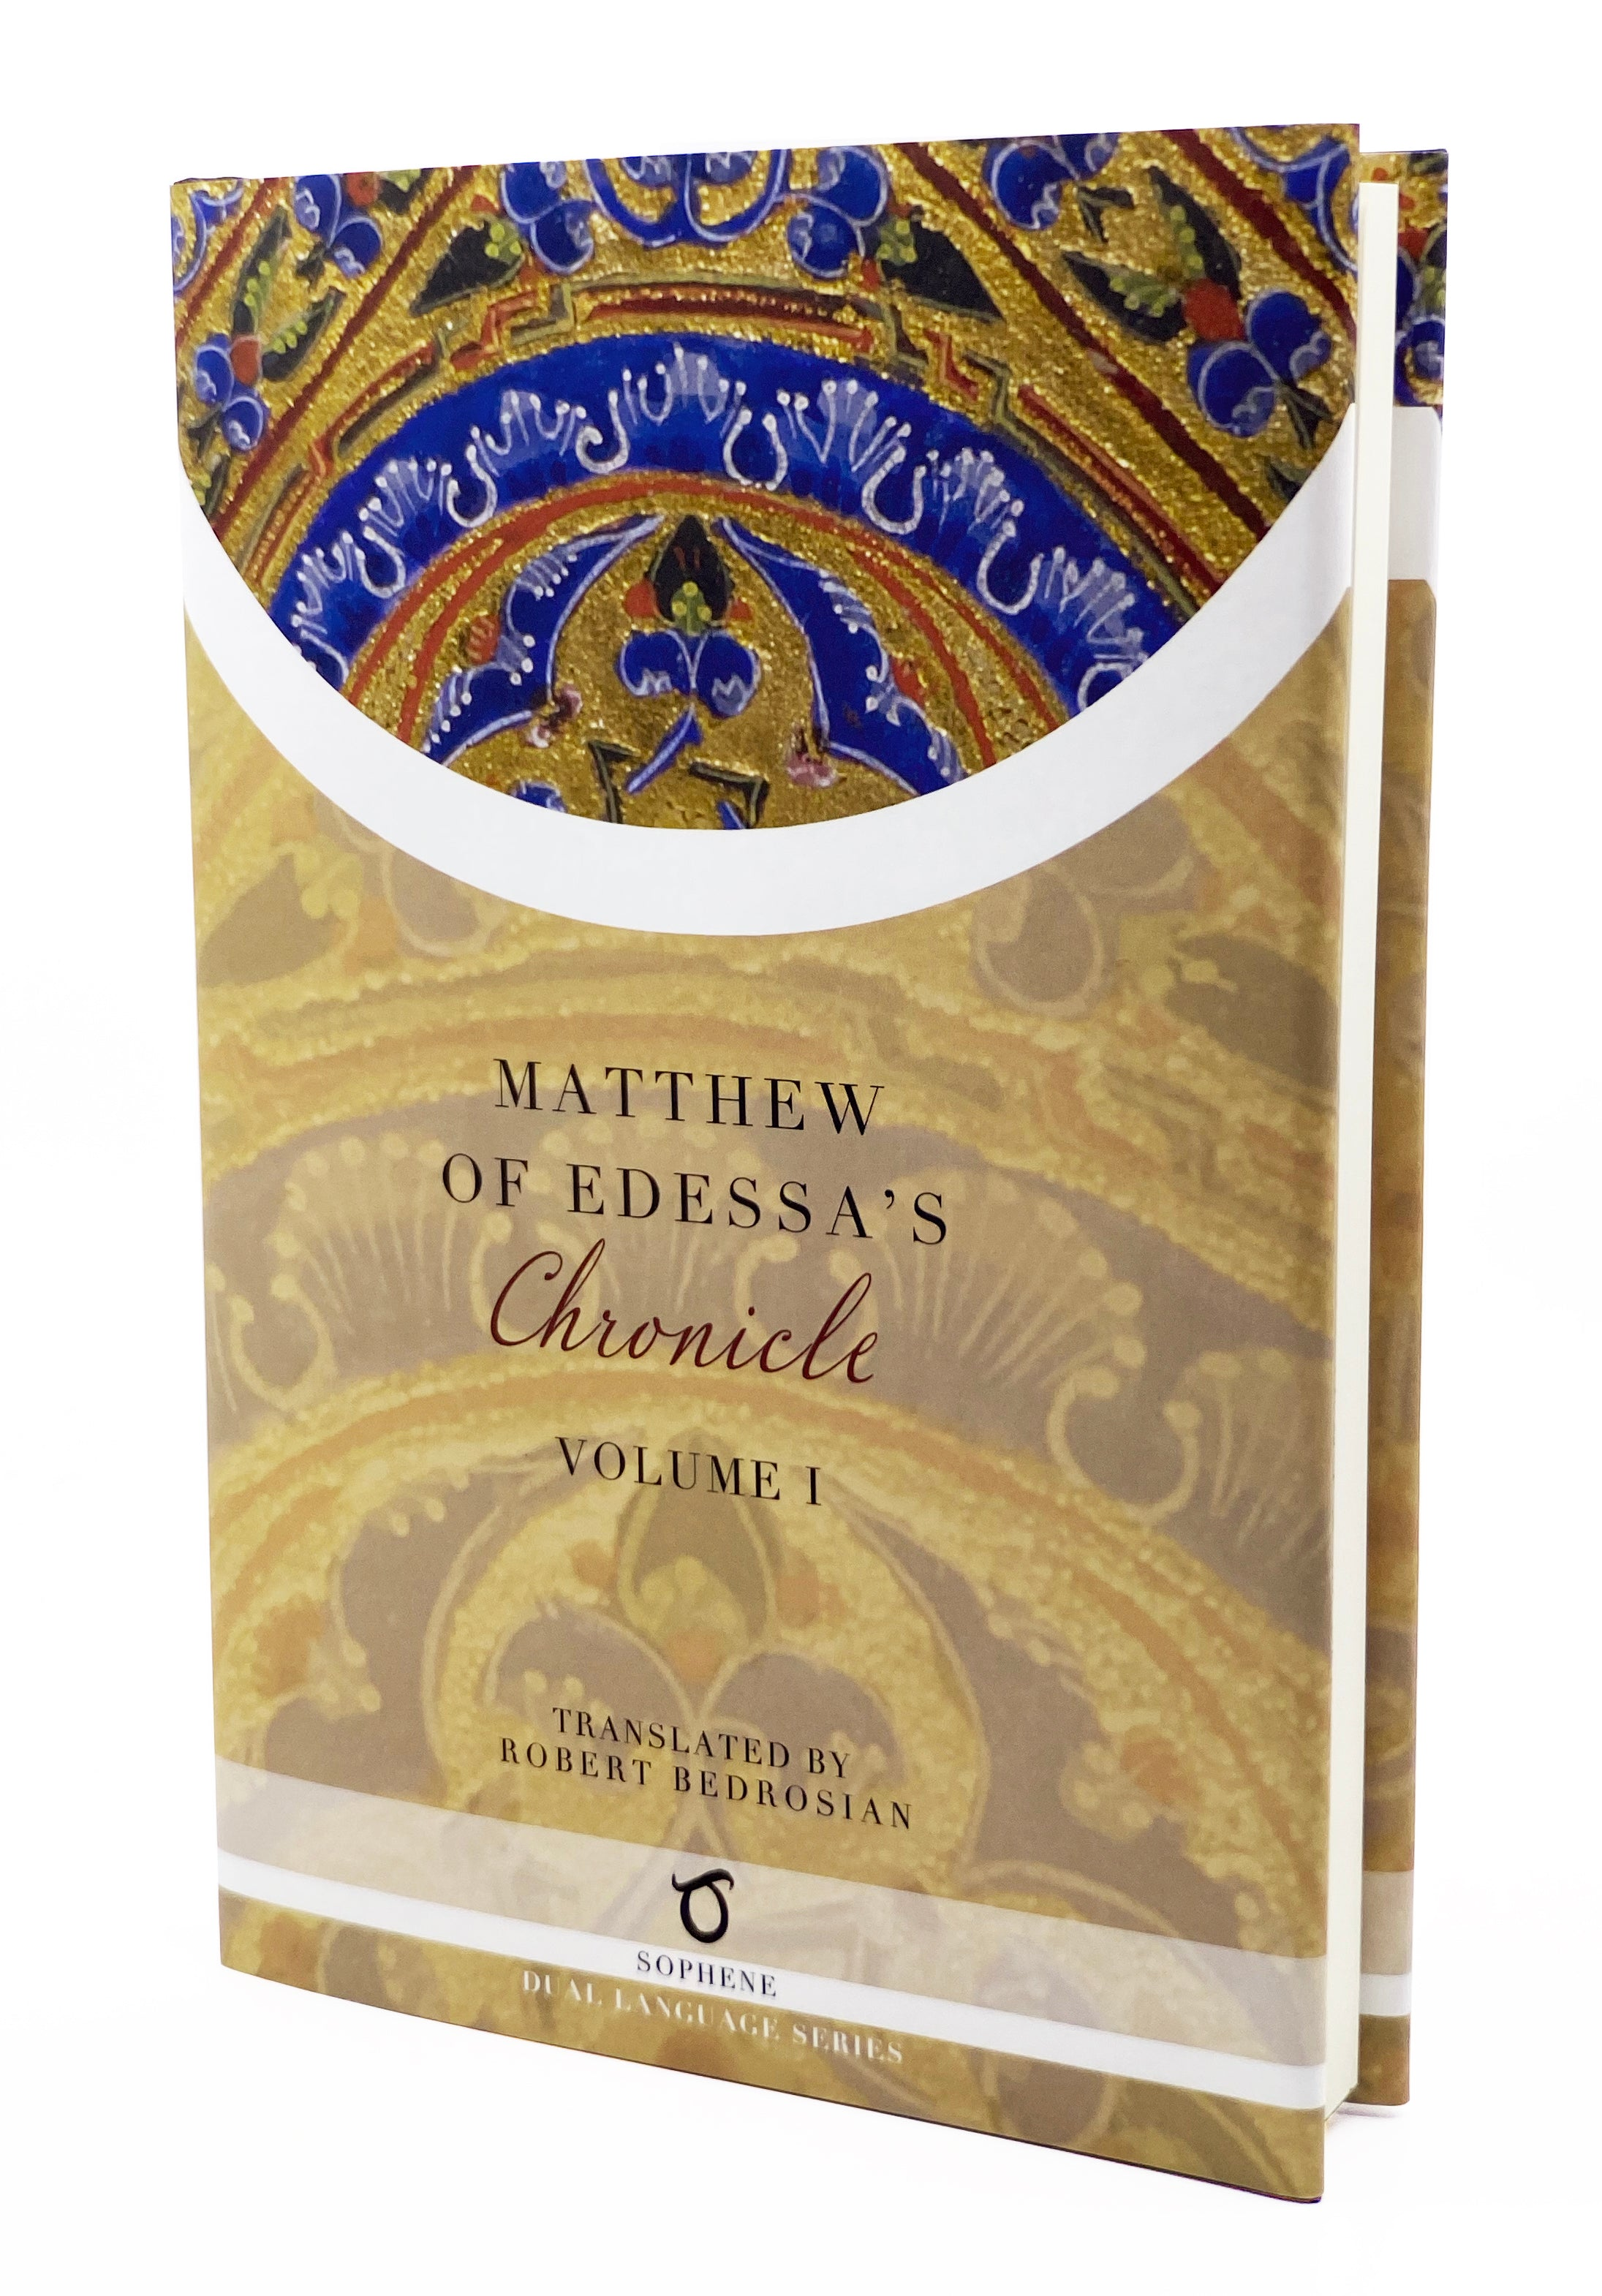 Matthew of Edessa's Chronicle (Volume 1)